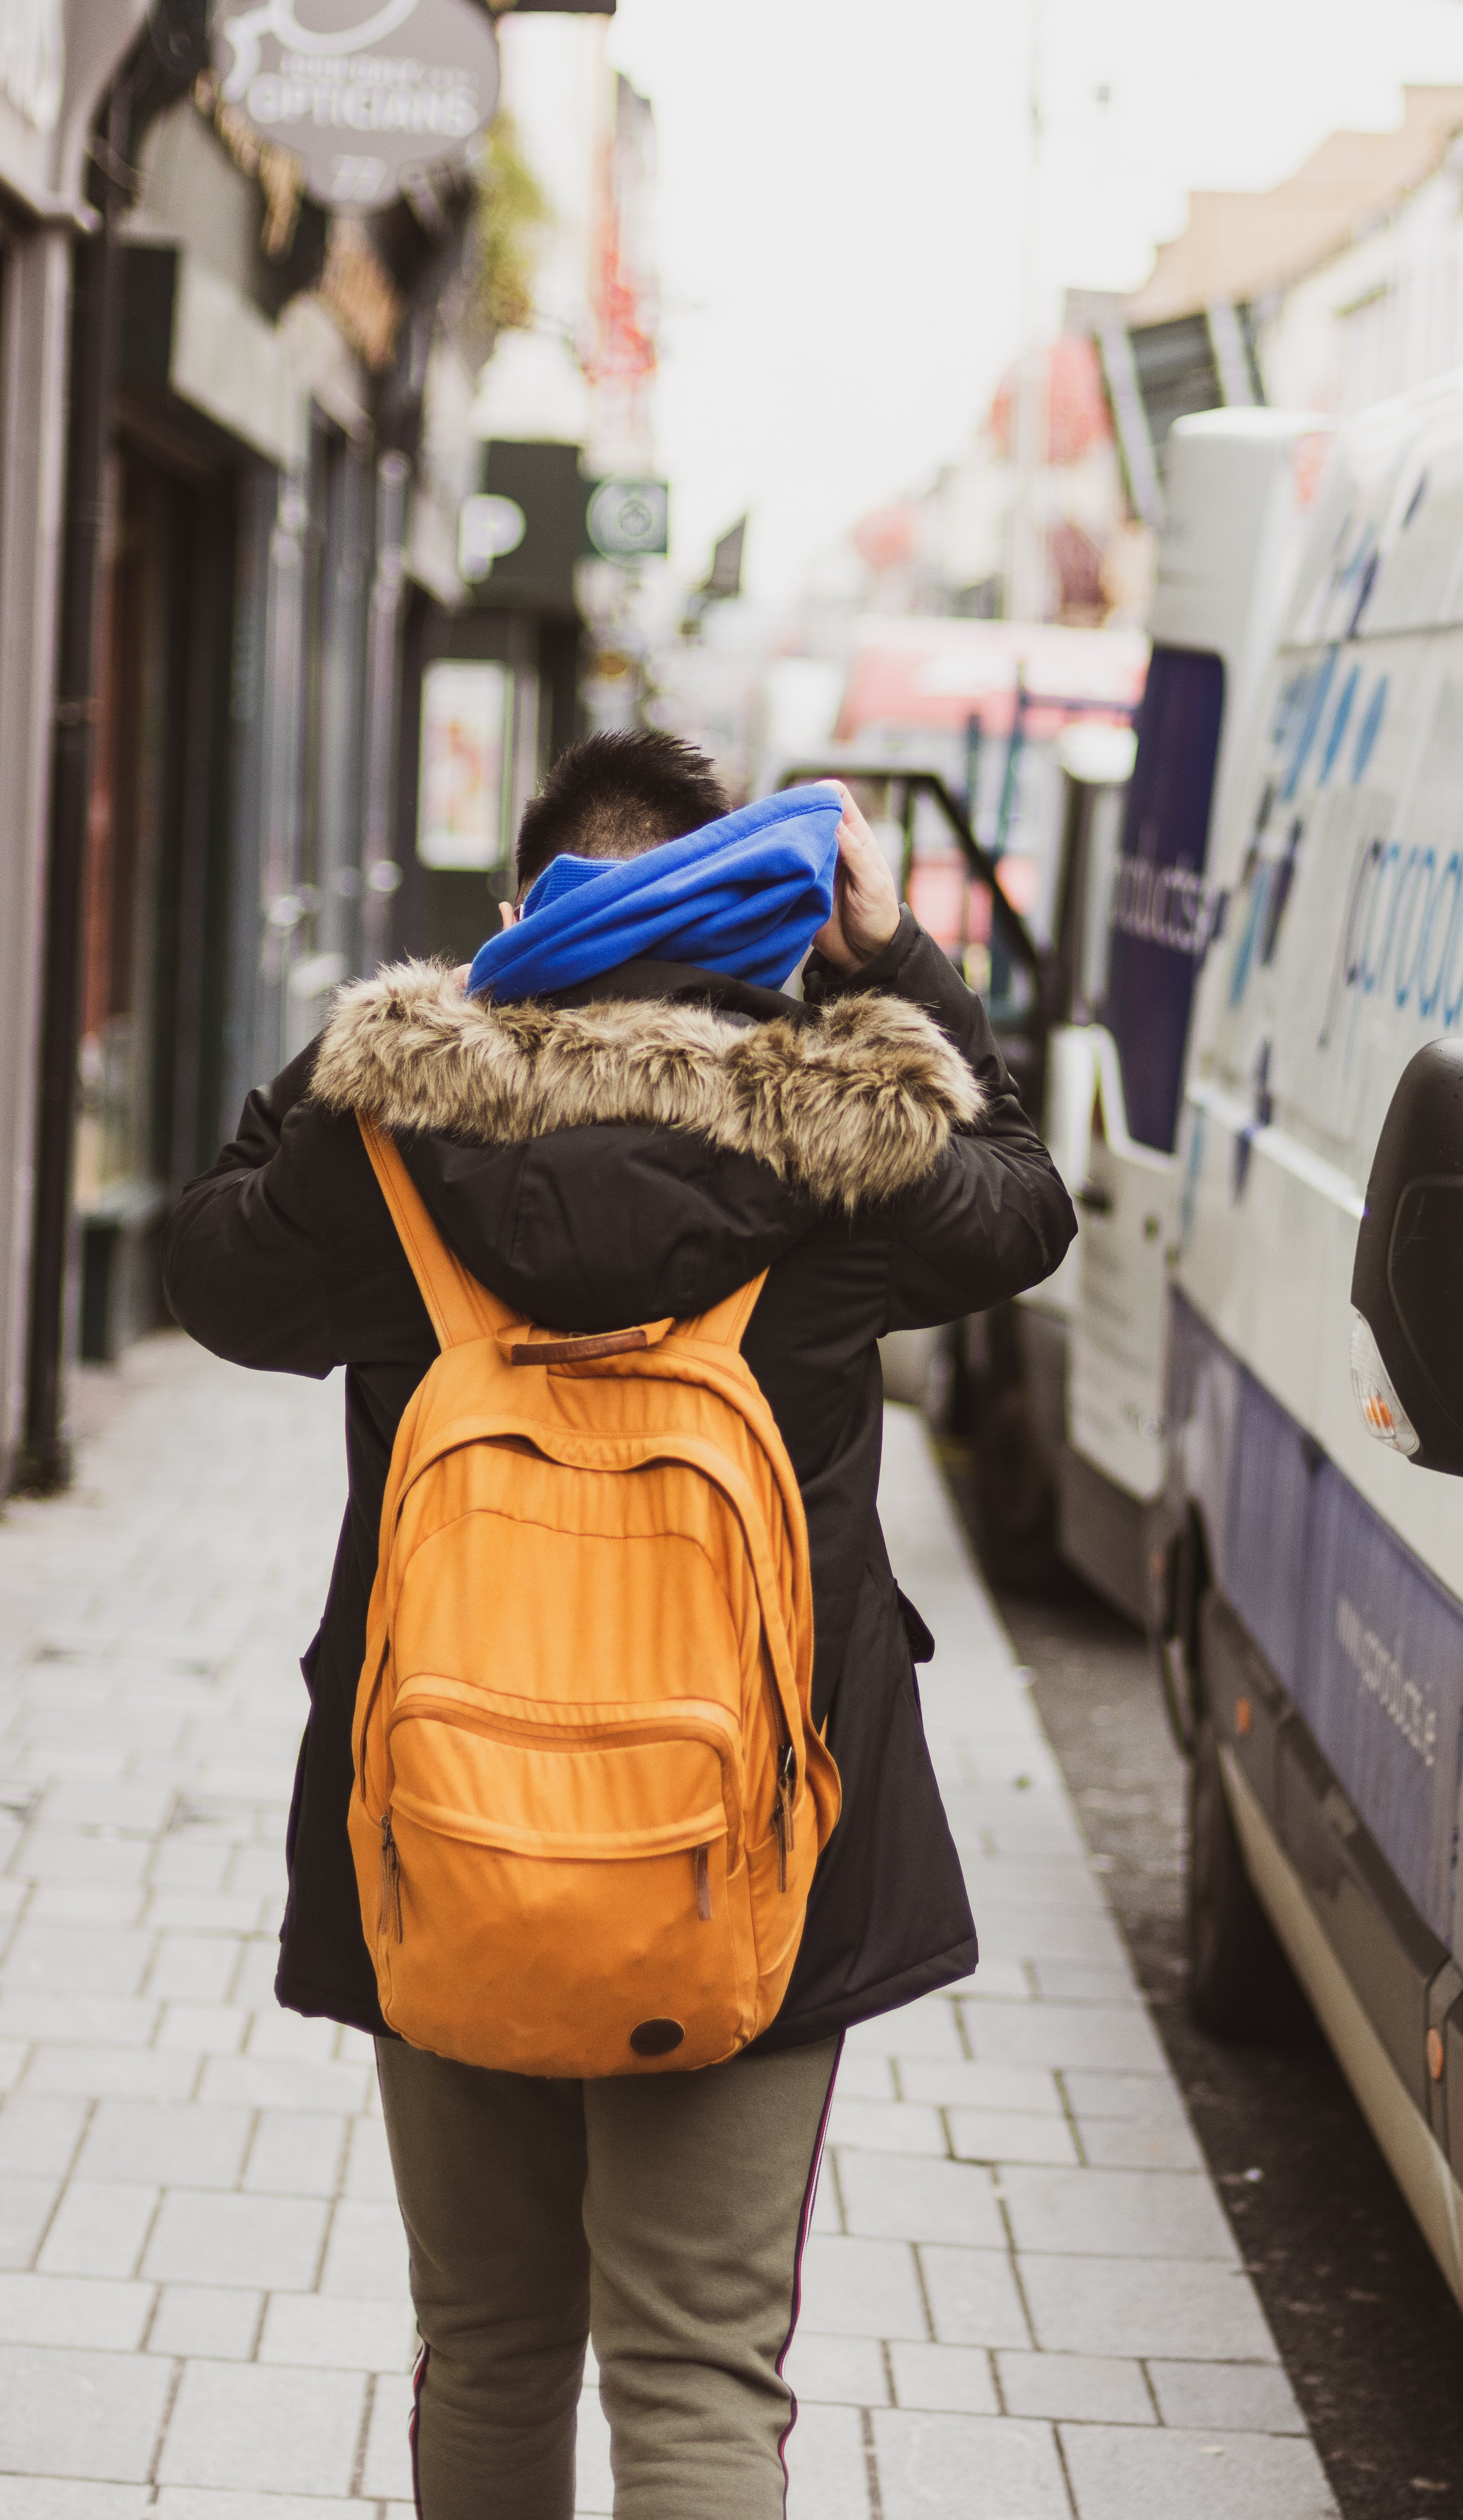 Free stock photo of backpack, blue, brown, candid